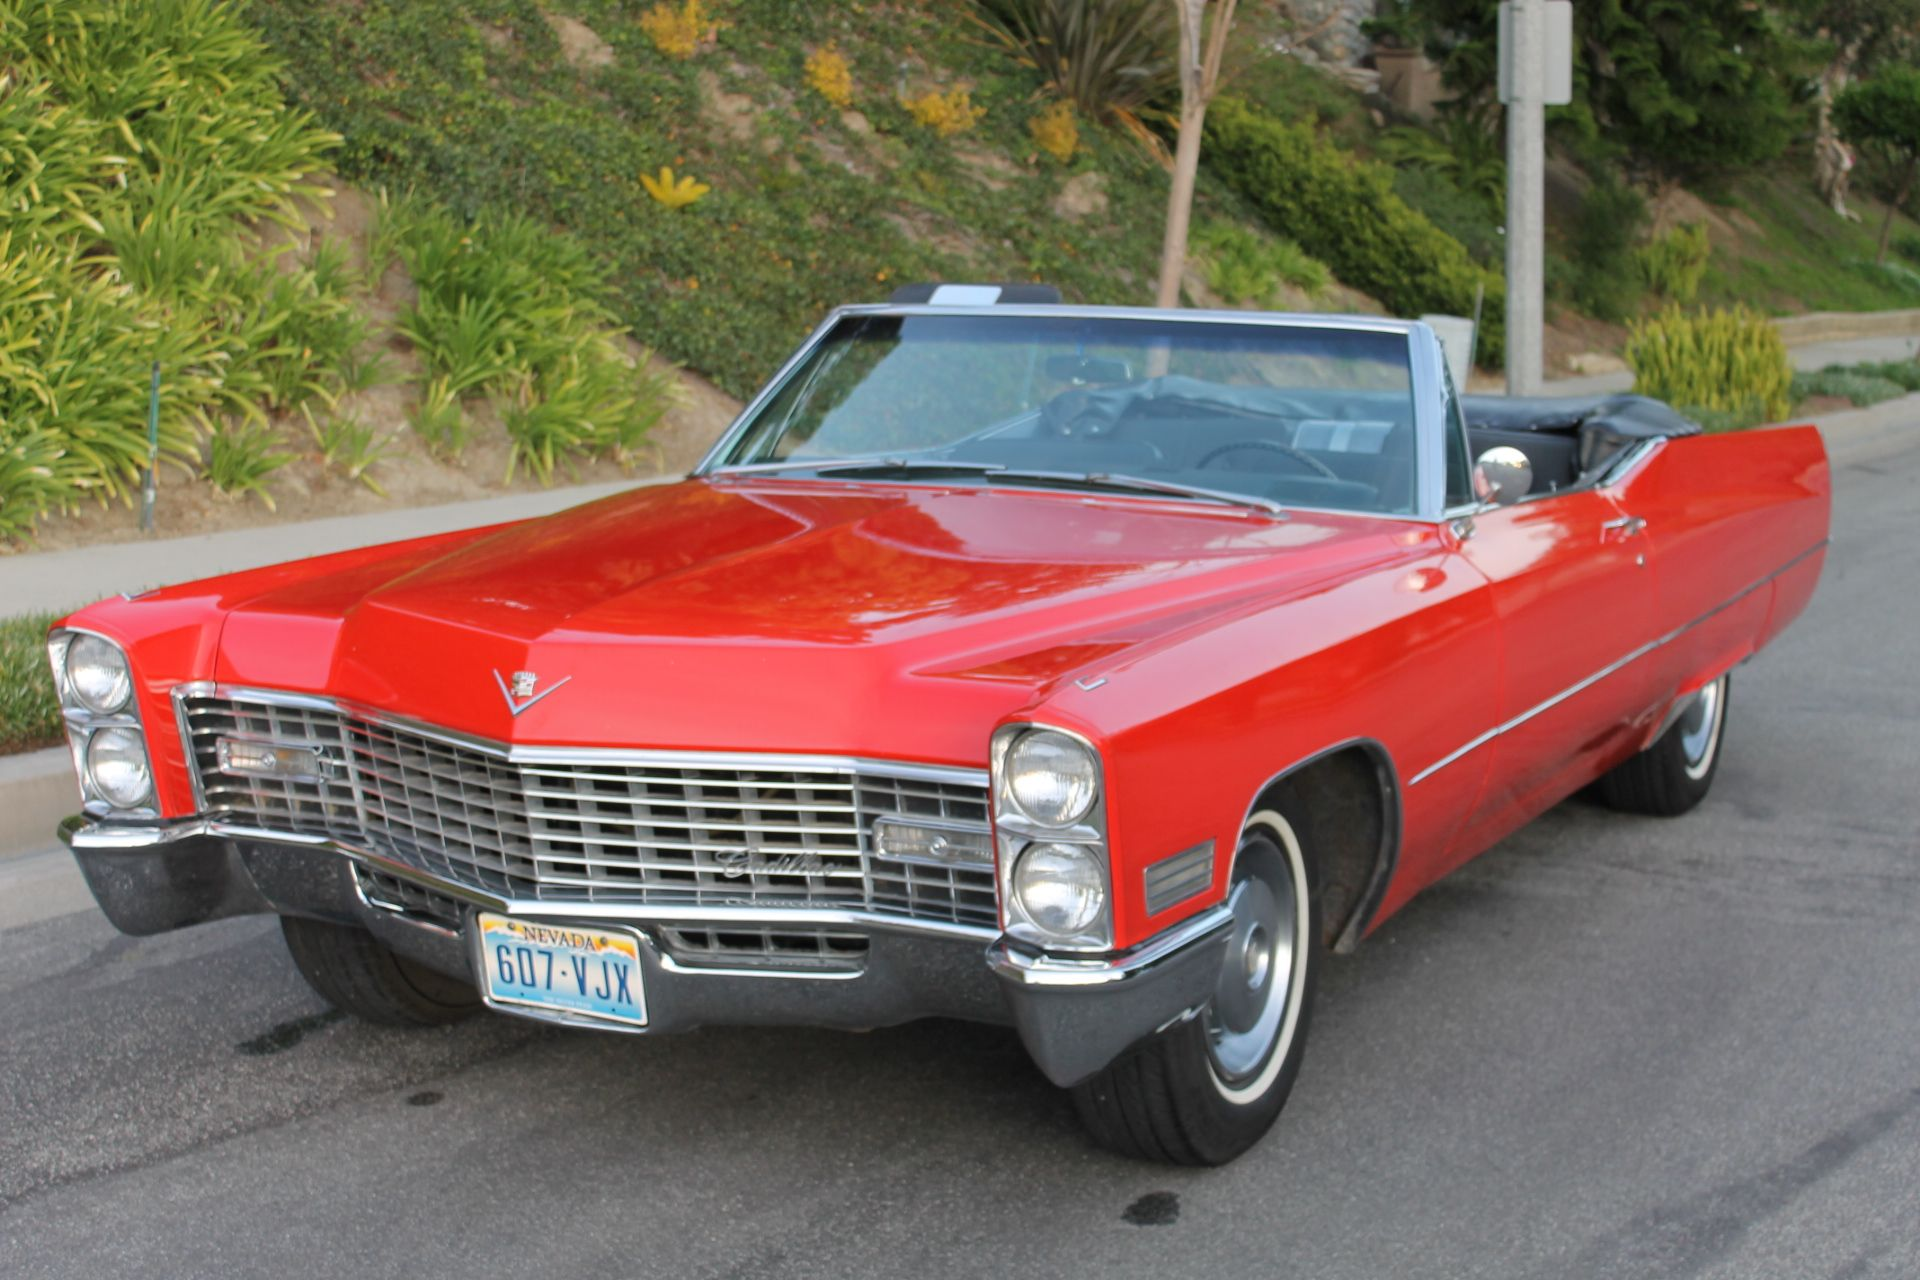 Cadillac automobile - cool image | Cadillac, Convertible and Cars